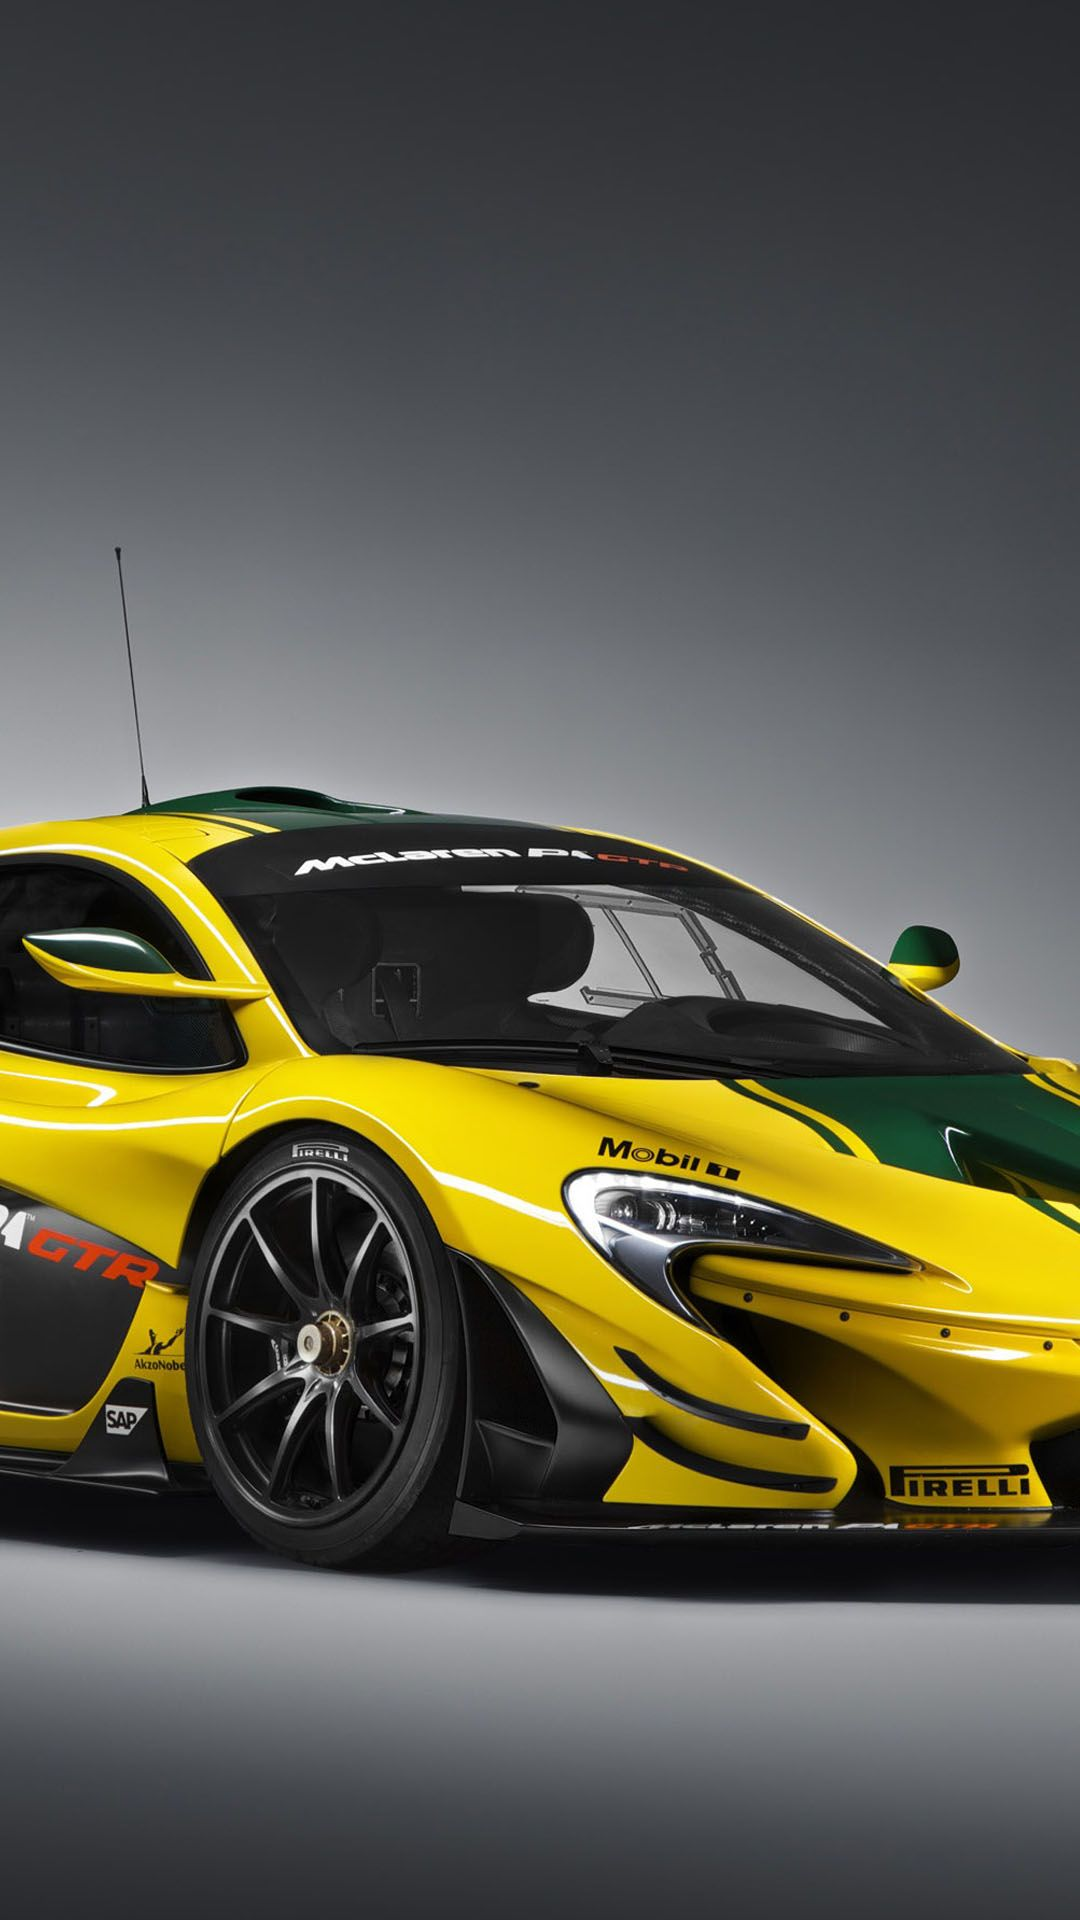 mclaren p gtr limited edition hd wallpaper With images Gtr 1080x1920